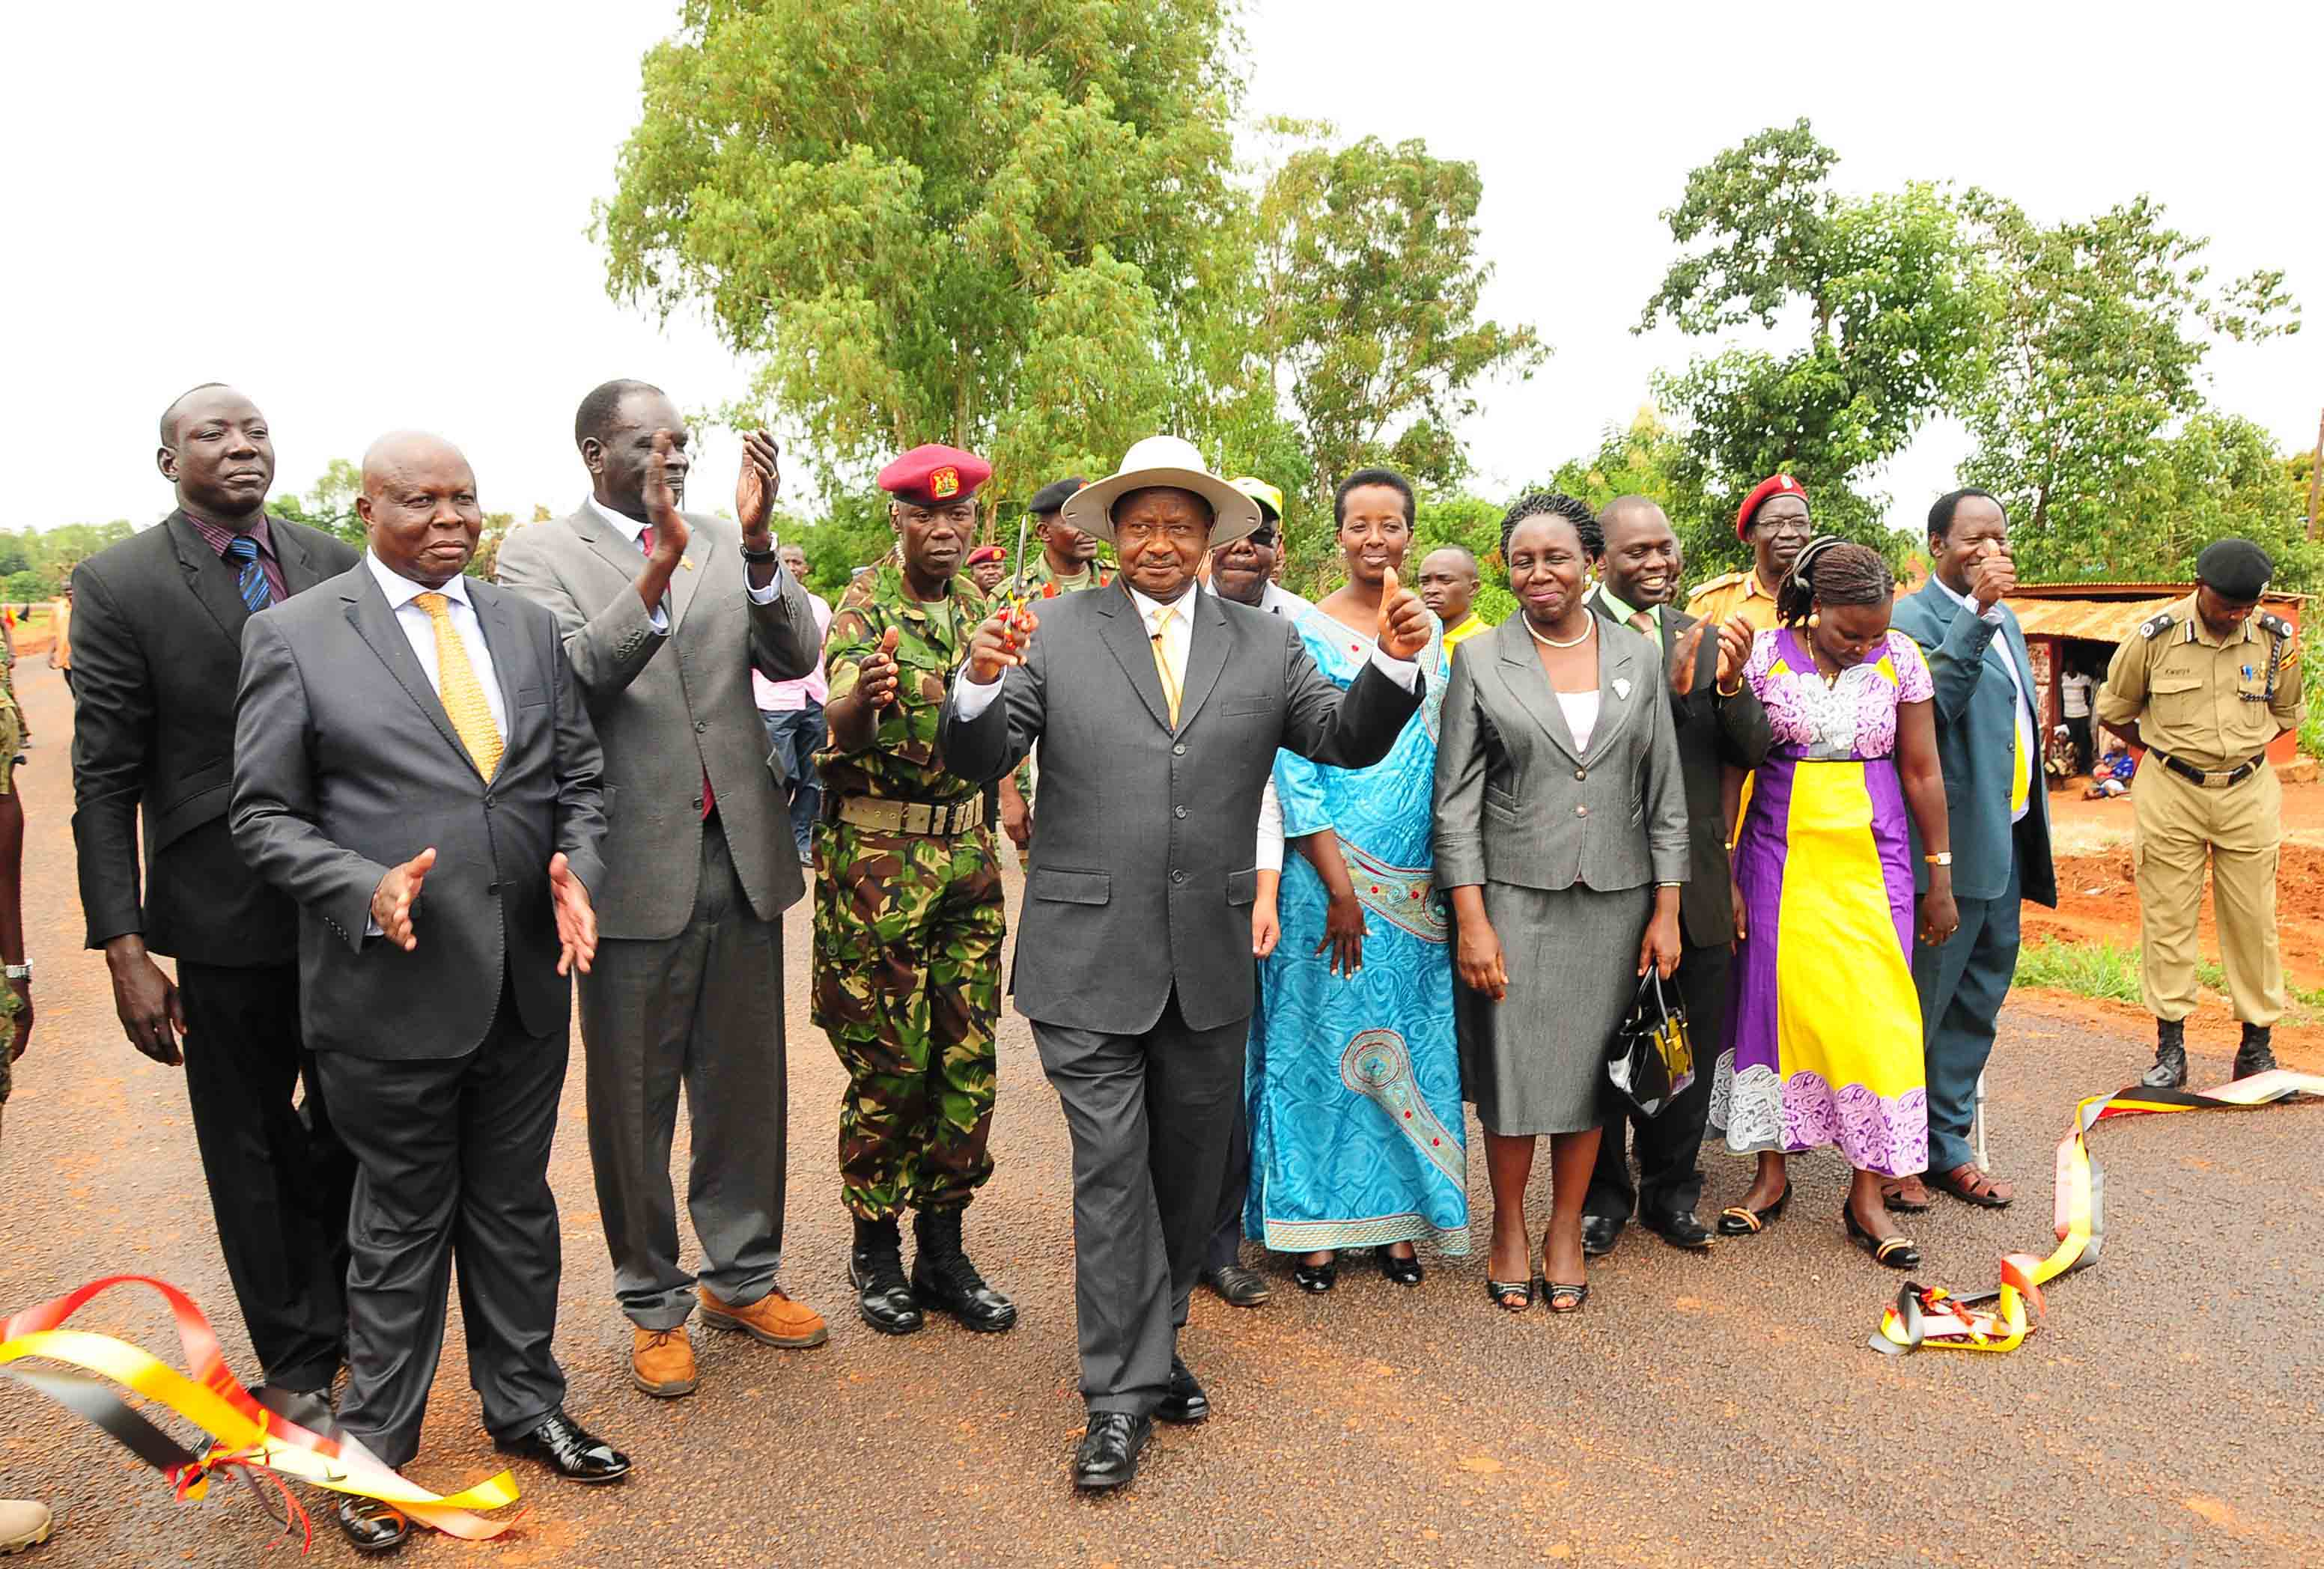 THUMBS UP: President Yoweri Museveni showing his victory sign after  commissioning Gulu- Atiak Road constructed by China HE NAN International Company yesterday. On his right is Project Manager Jin Pai Zhang, UNRA ED Allen Kagina. PHOTO BY ENOCK KAKANDE